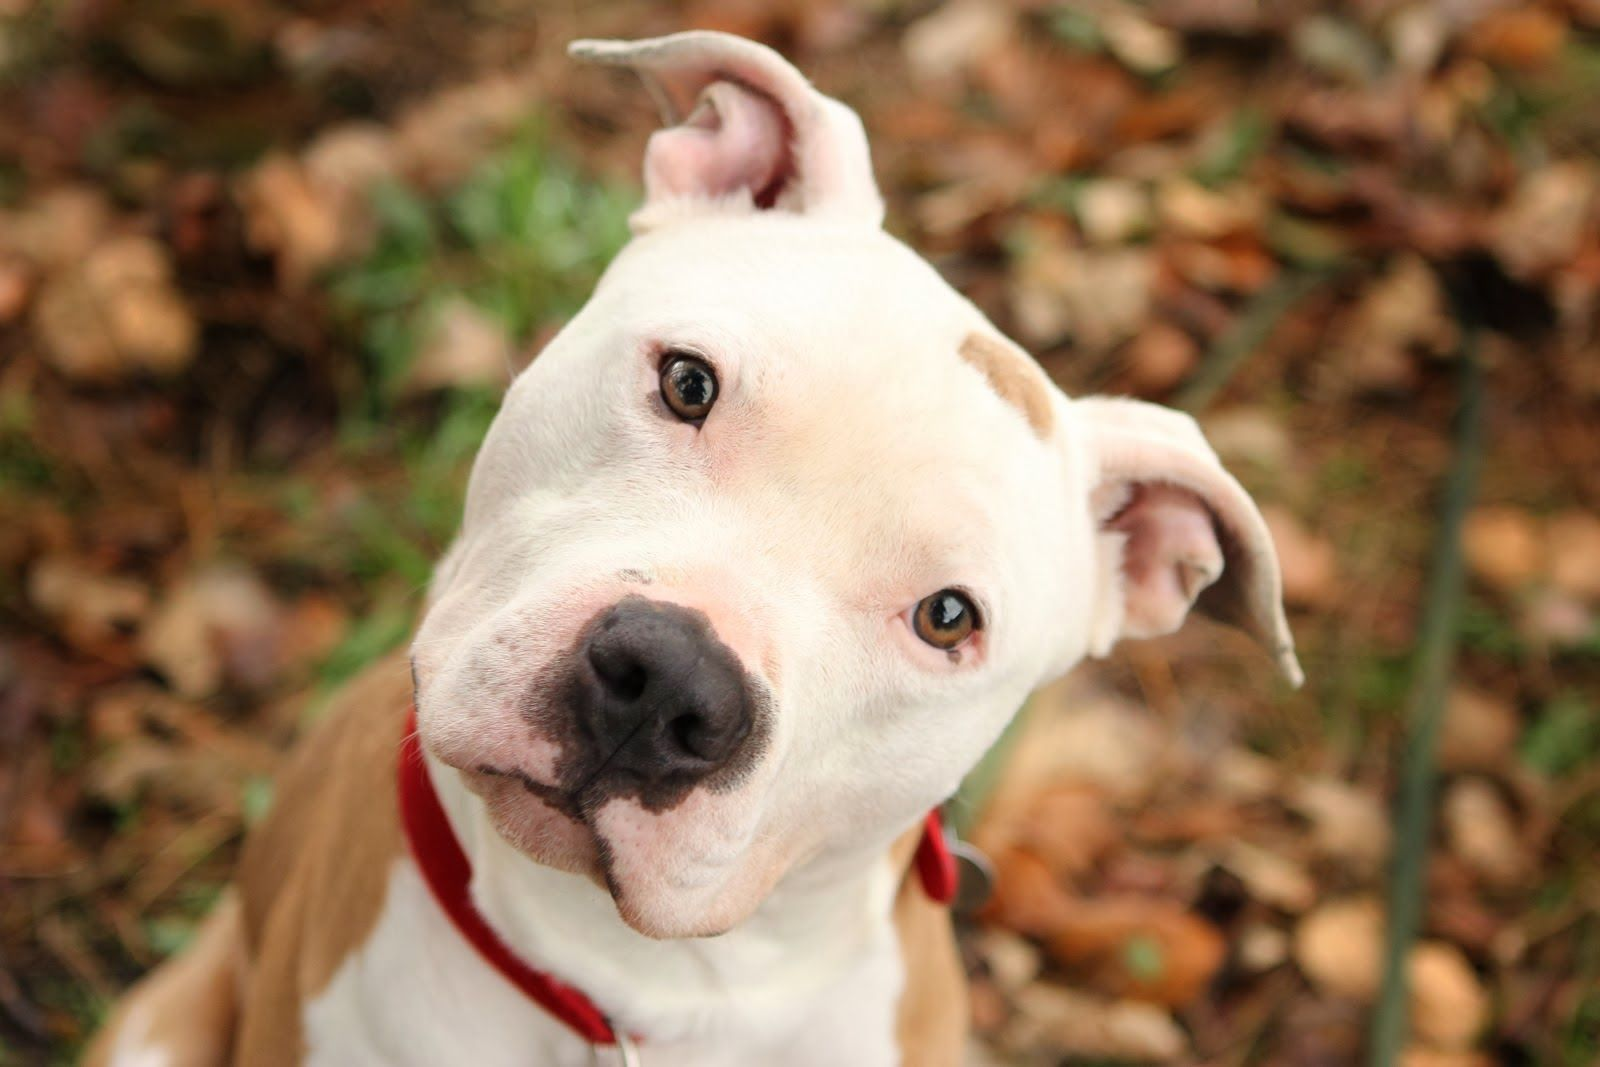 Dog Wallpapers Hd Android Apps On Google Play 1024 768 Image Dog Wallpapers 30 Wallpapers Adorable Wallpapers Pitbull Dog Pitbulls Pitbull Dog Images